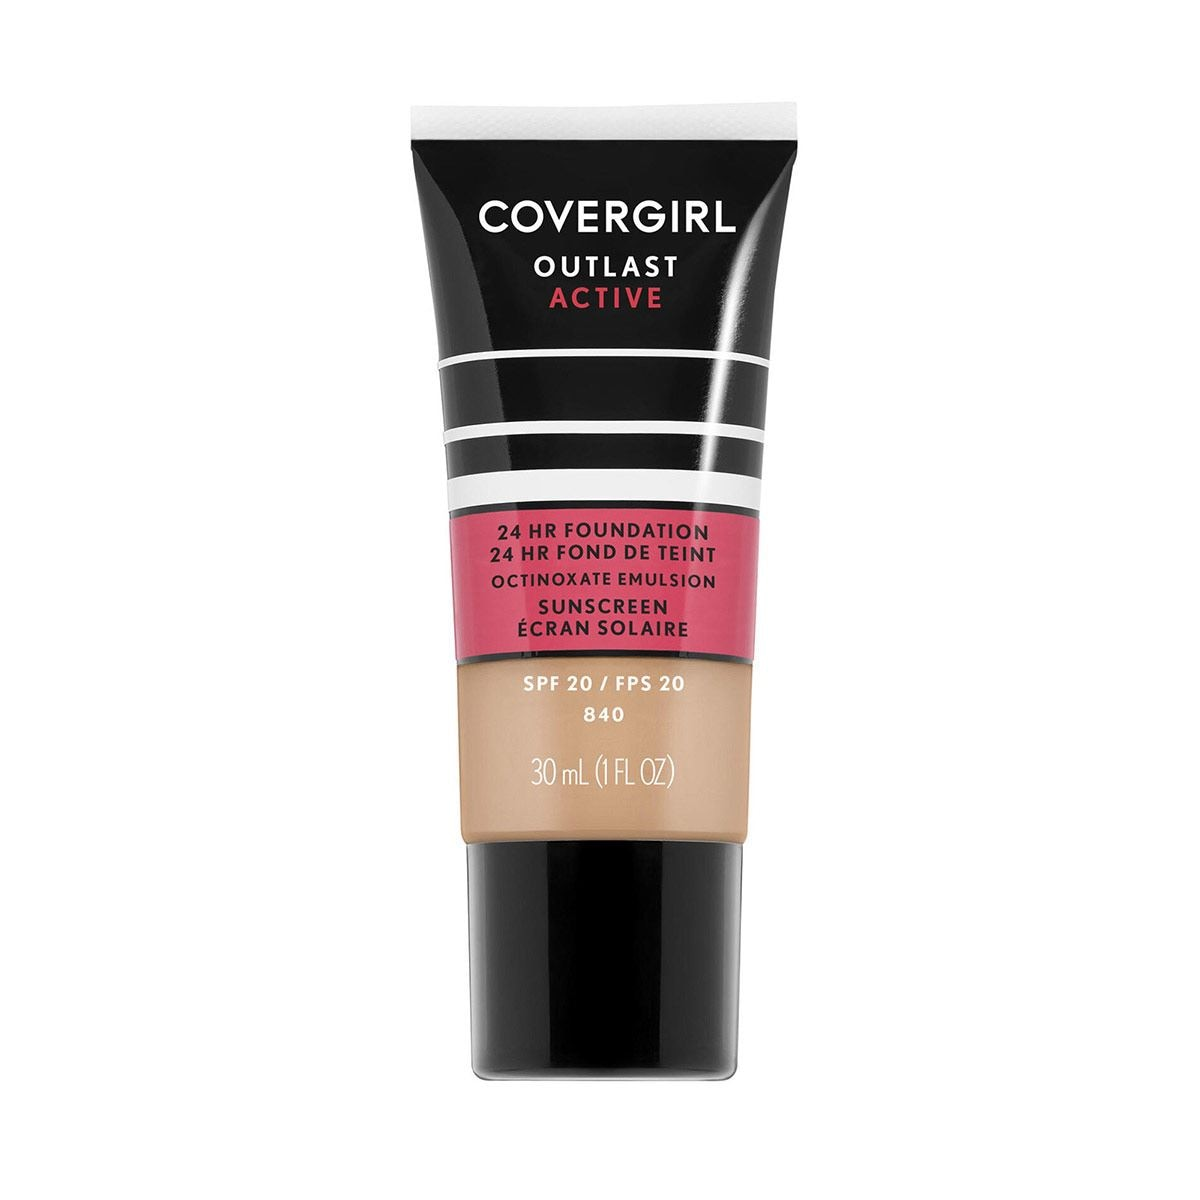 Base de Maquillaje Líquida Covergirl Outlast Active 840 Natural Beige